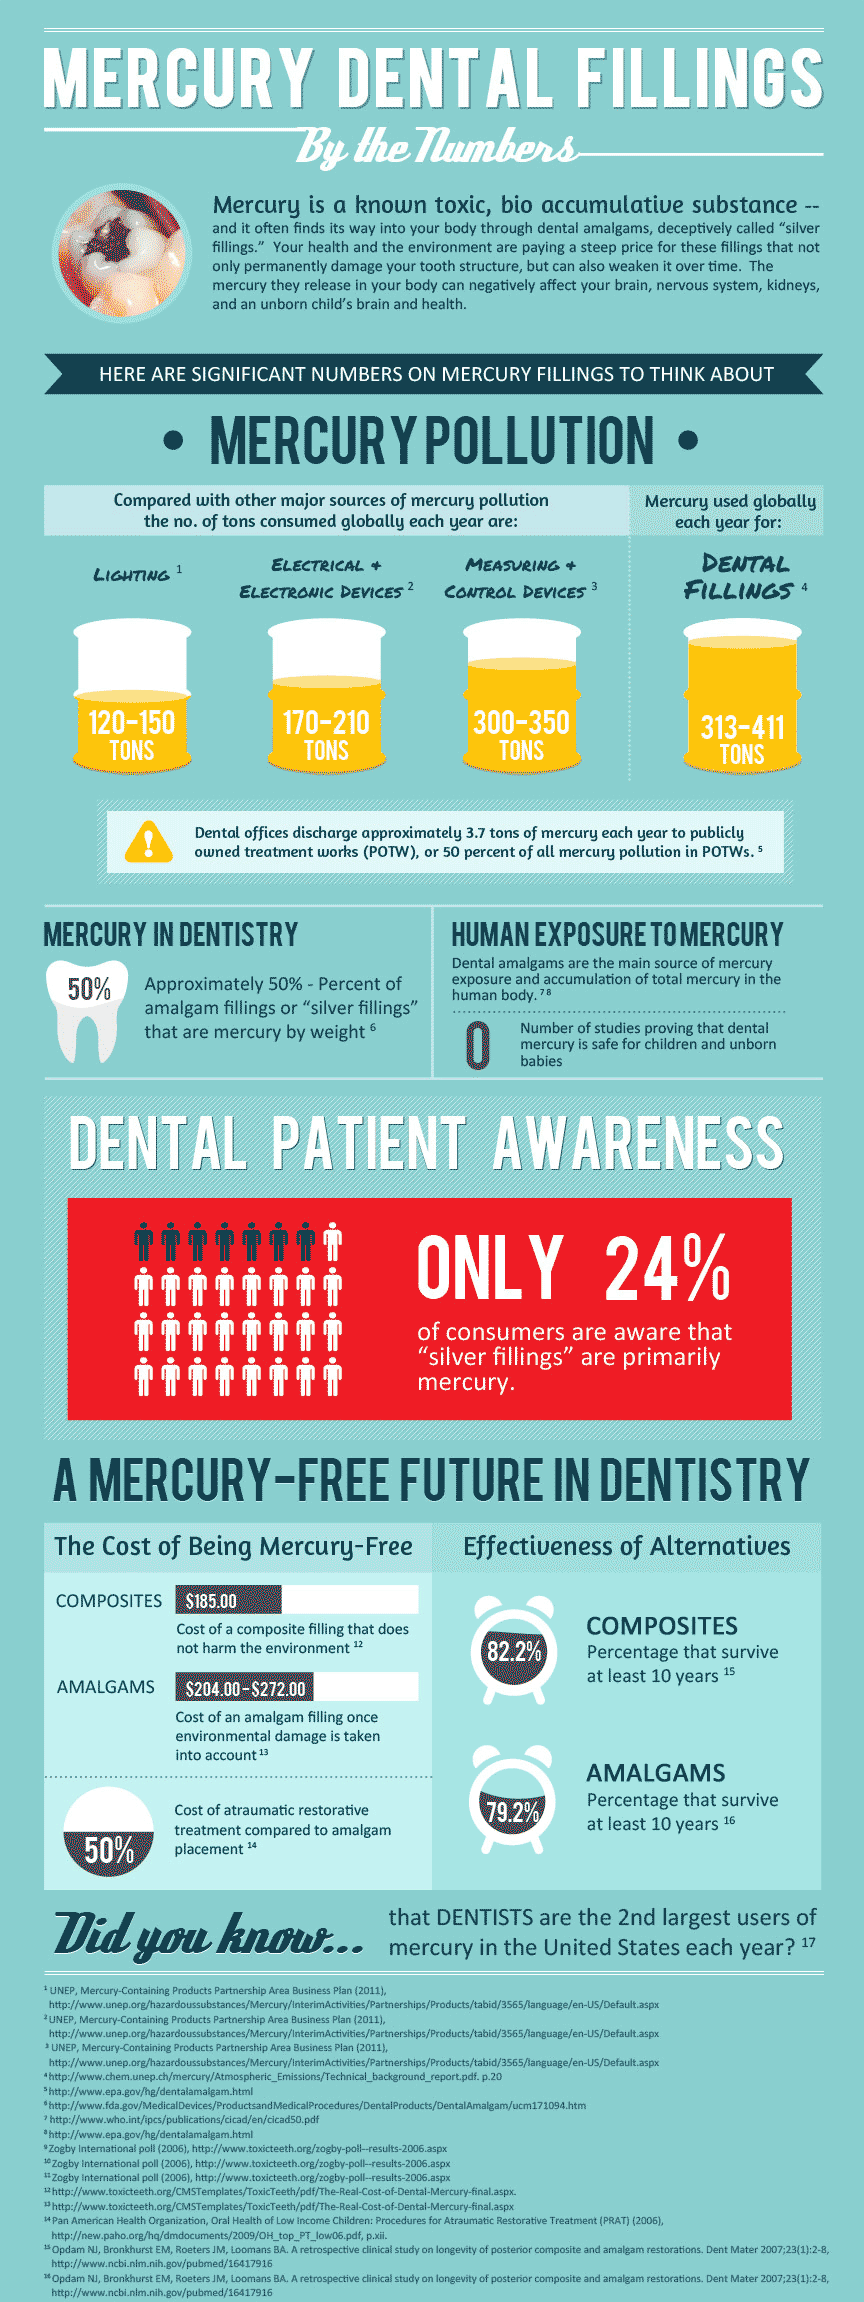 dental-fillings-infographic